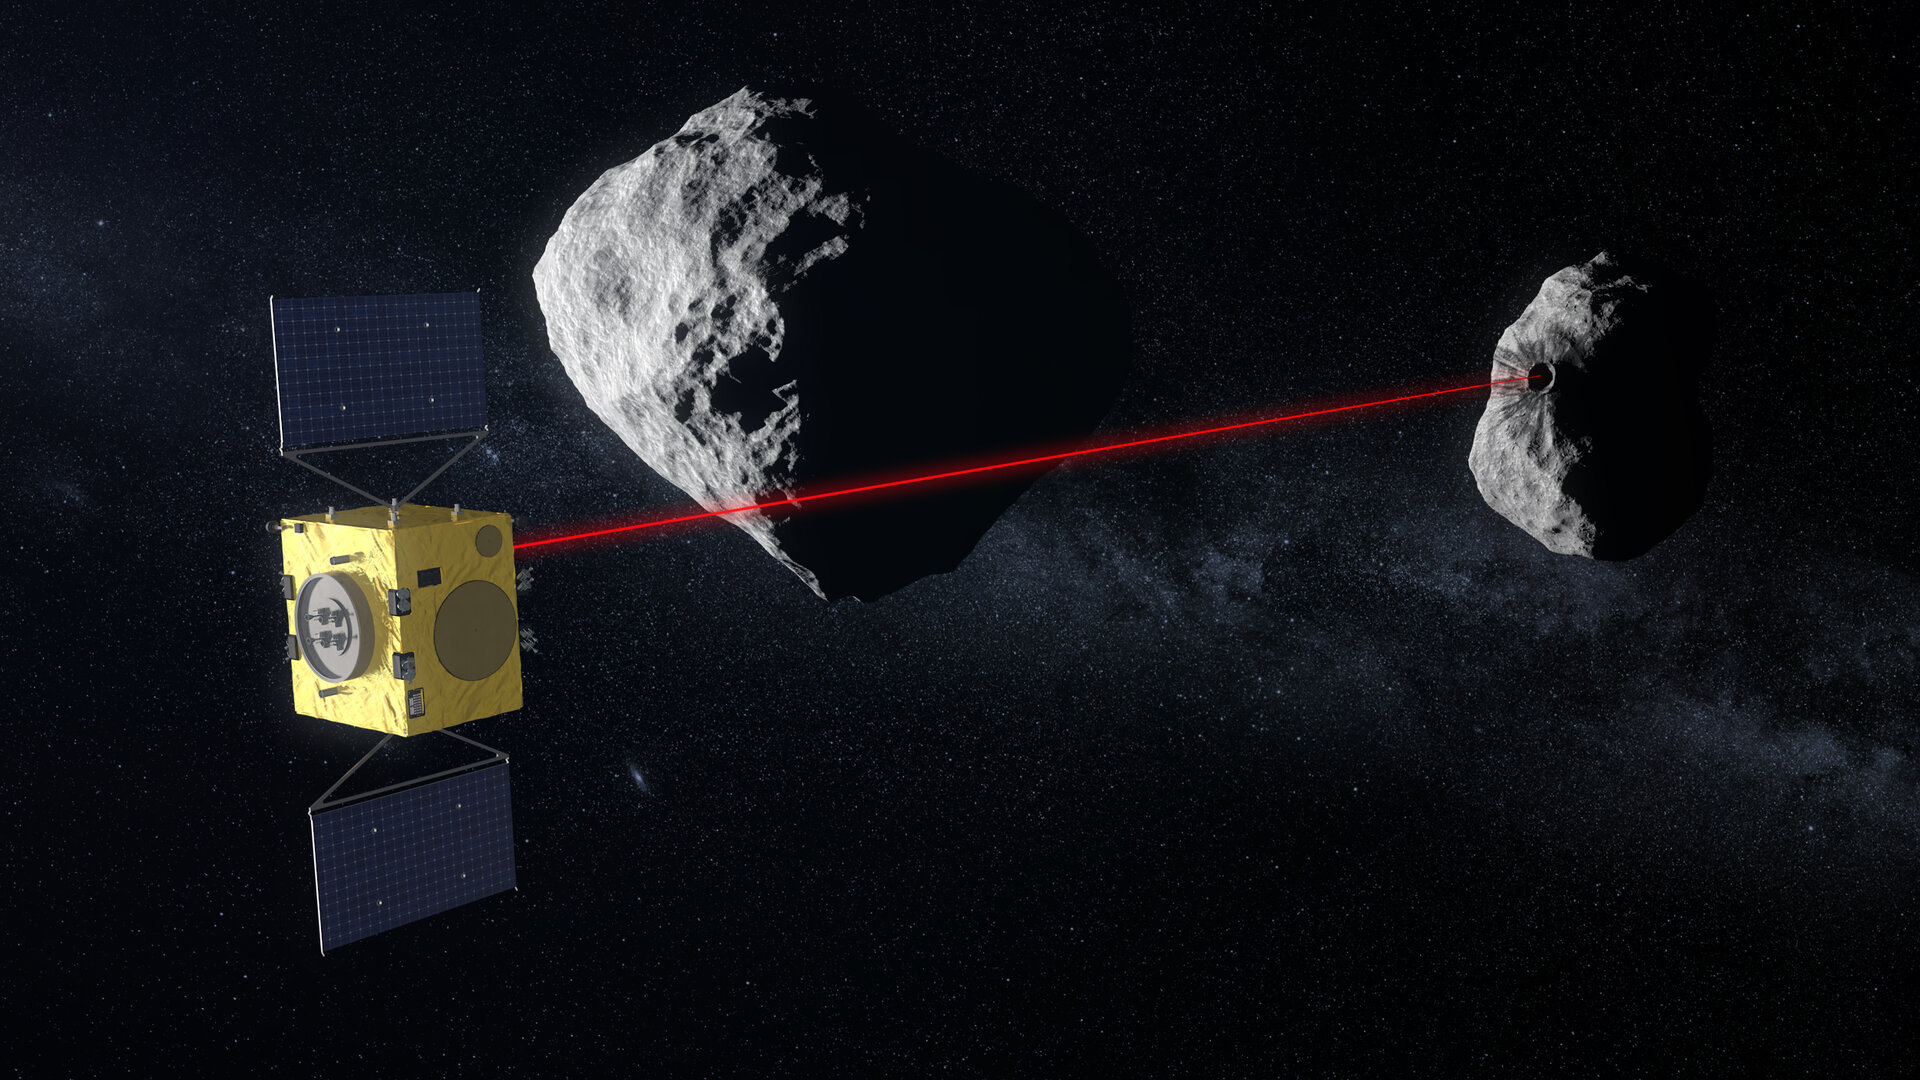 Using its laser altimeter Hera scans Didymoon's surface